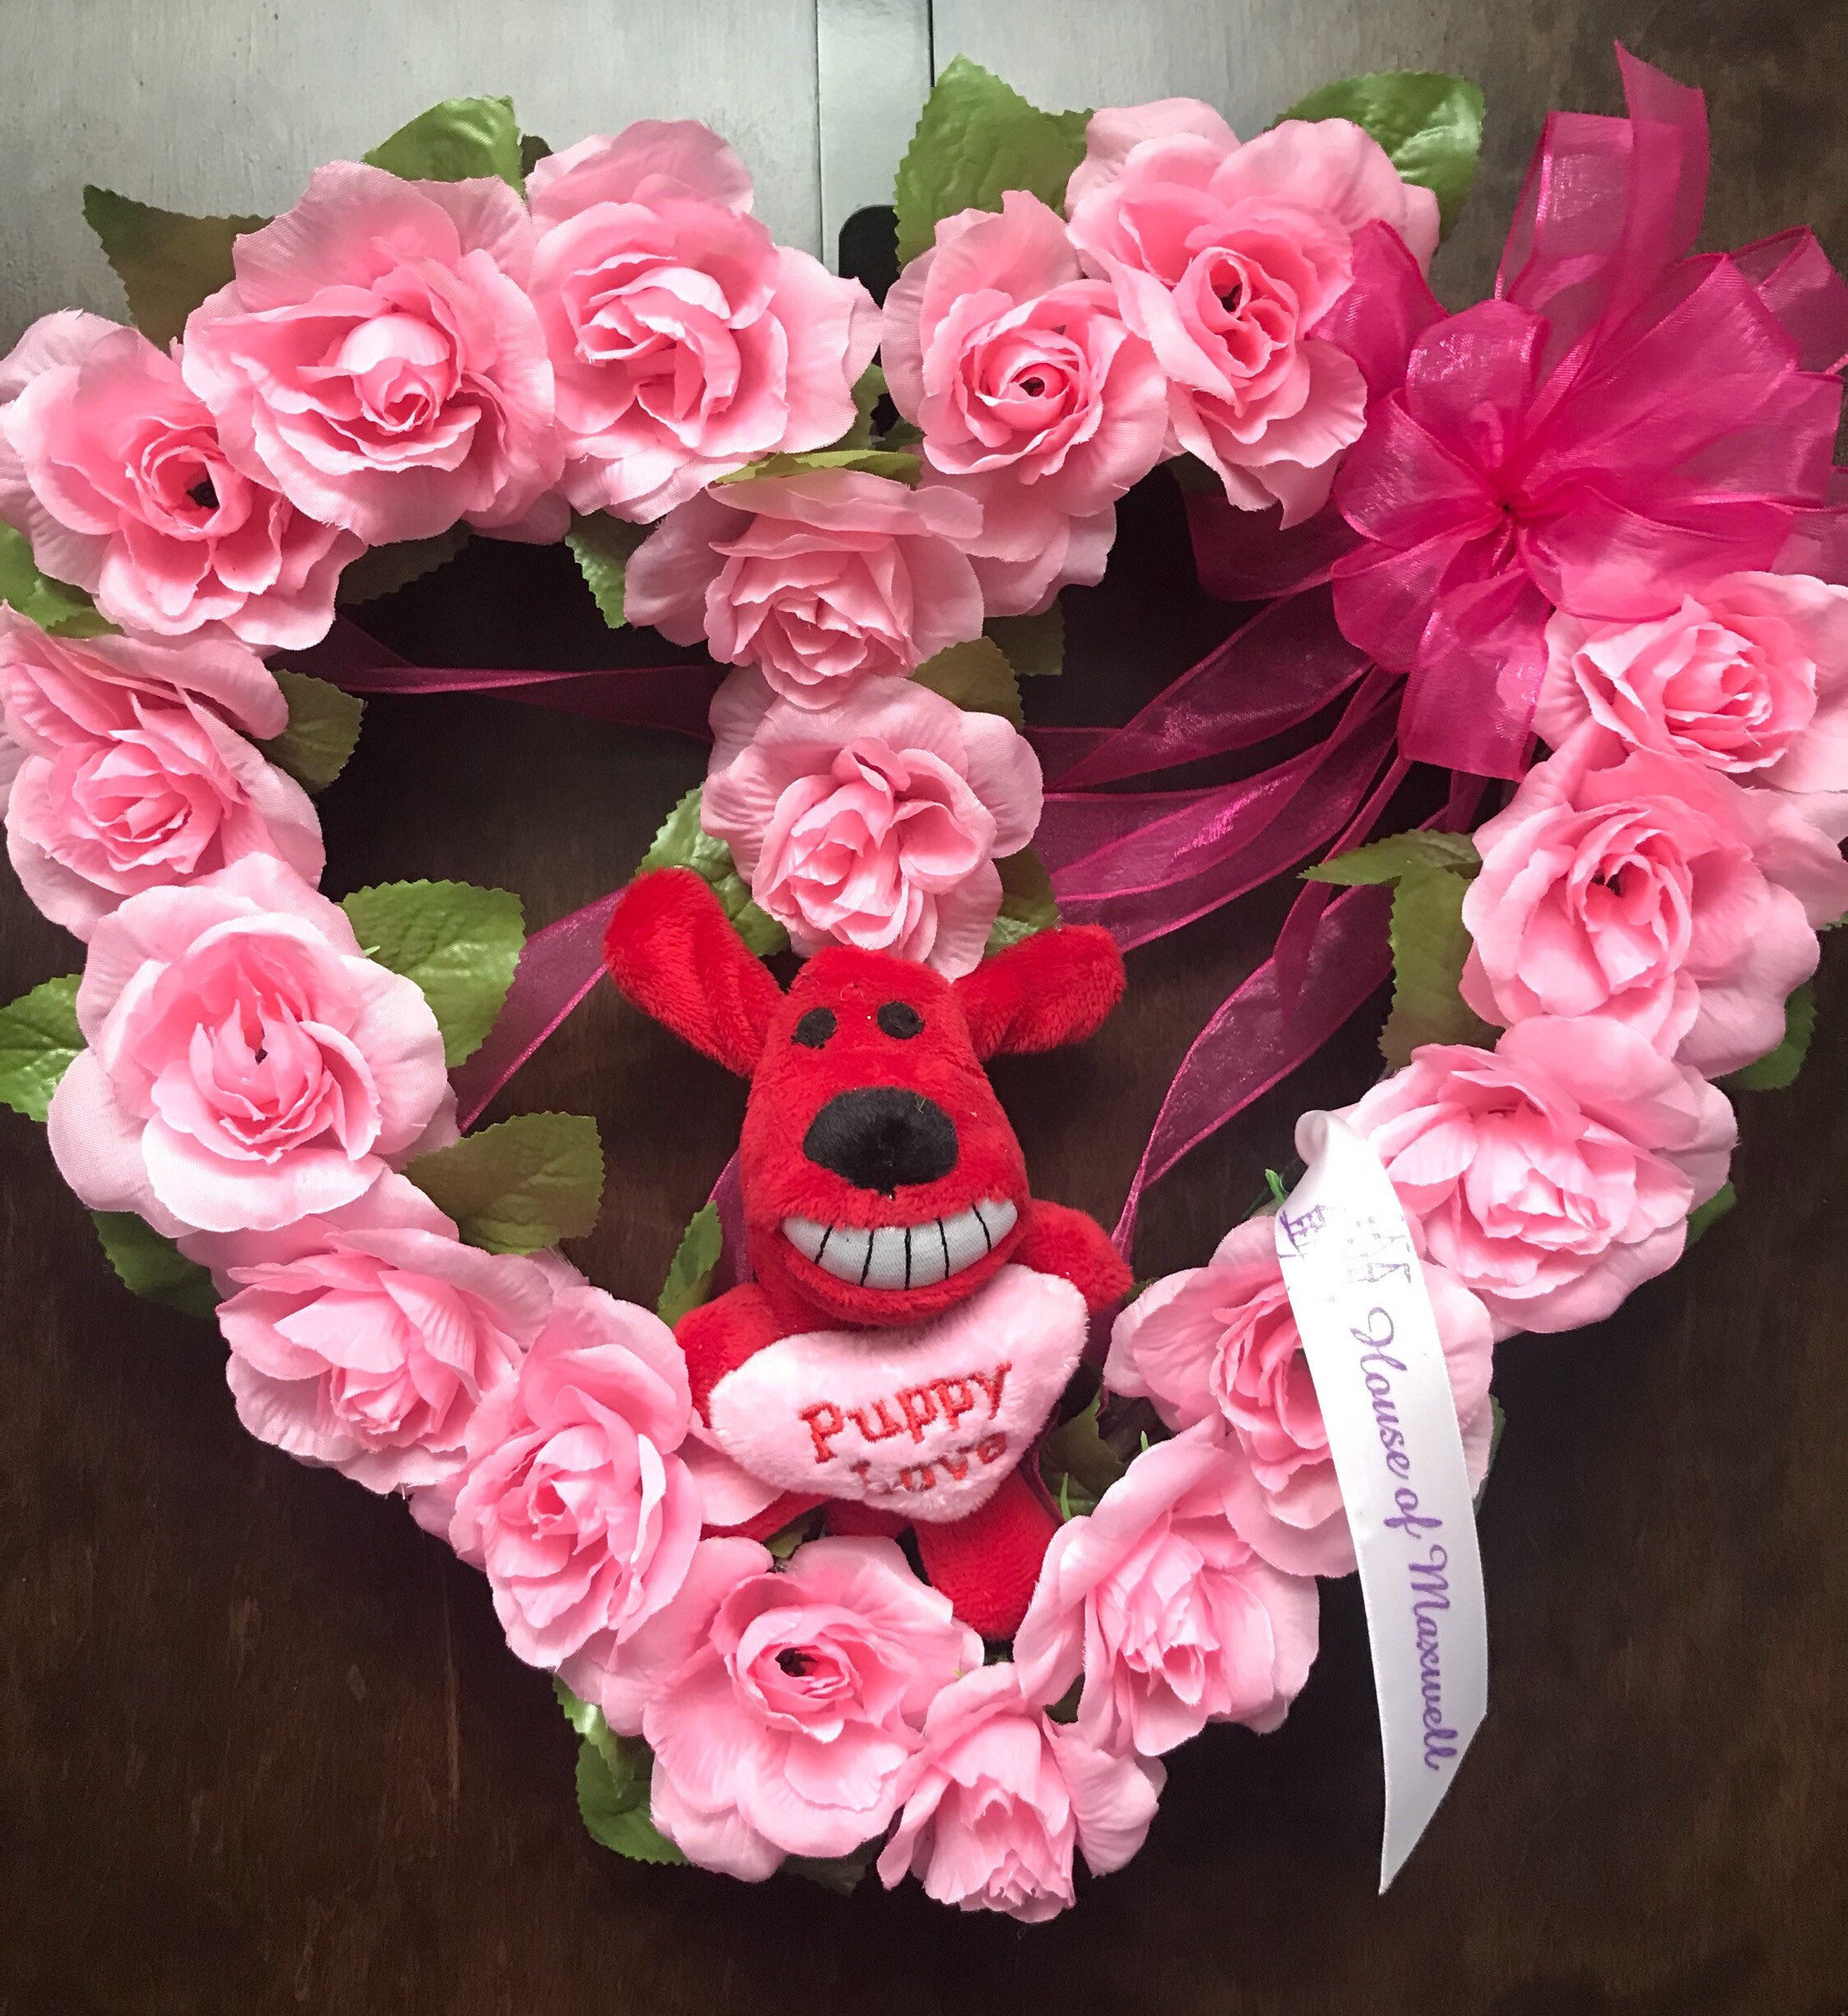 12 Puppy and Pink Roses Heart Wreath